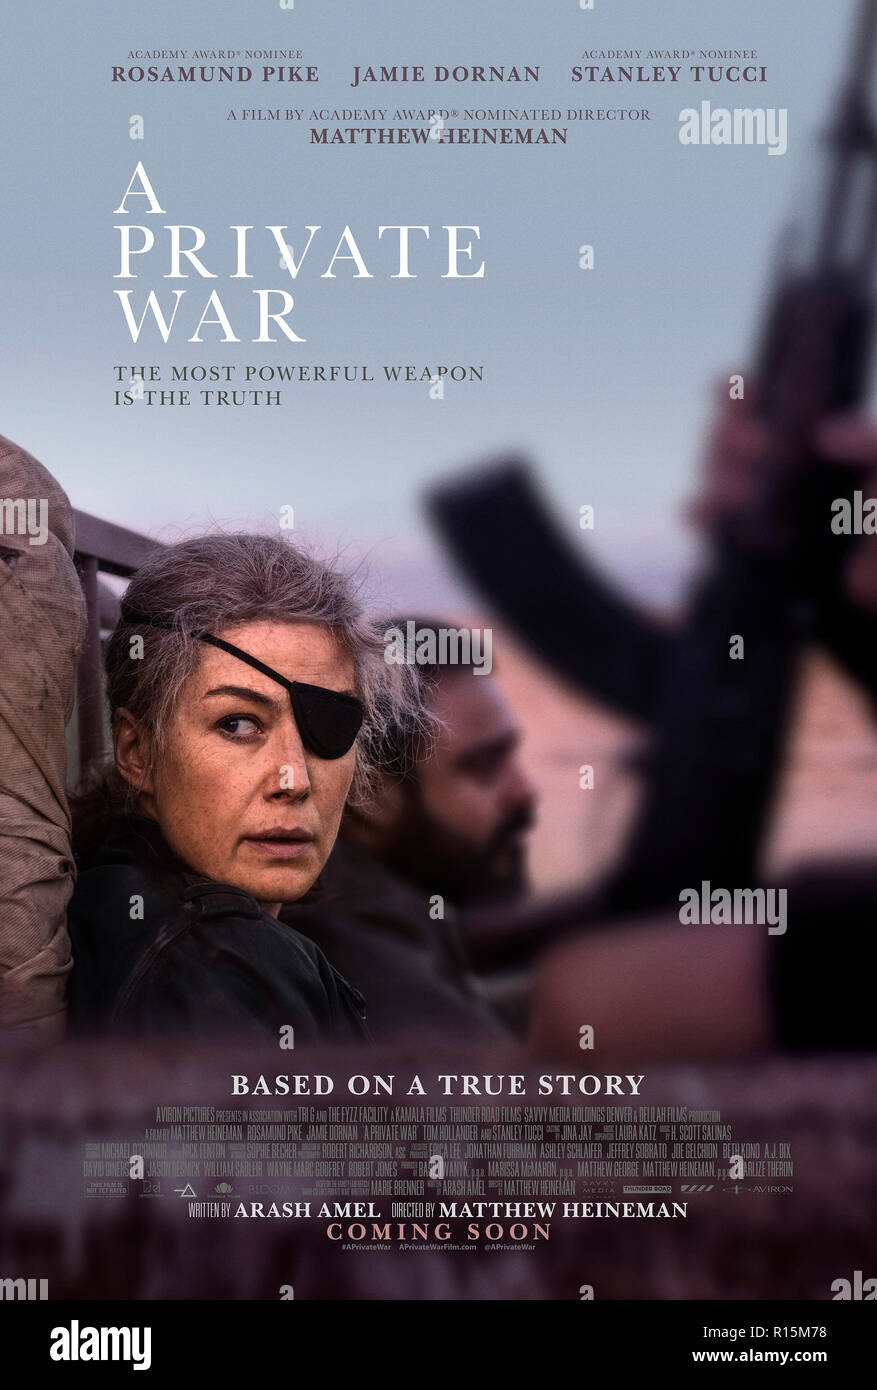 Prod DB © Acacia Filmed Entertainment - Thunder Road Pictures / DR A PRIVATE WAR de Matthew Heineman 2018 USA/GB affiche americaine Rosamund Pike Jami - Stock Image